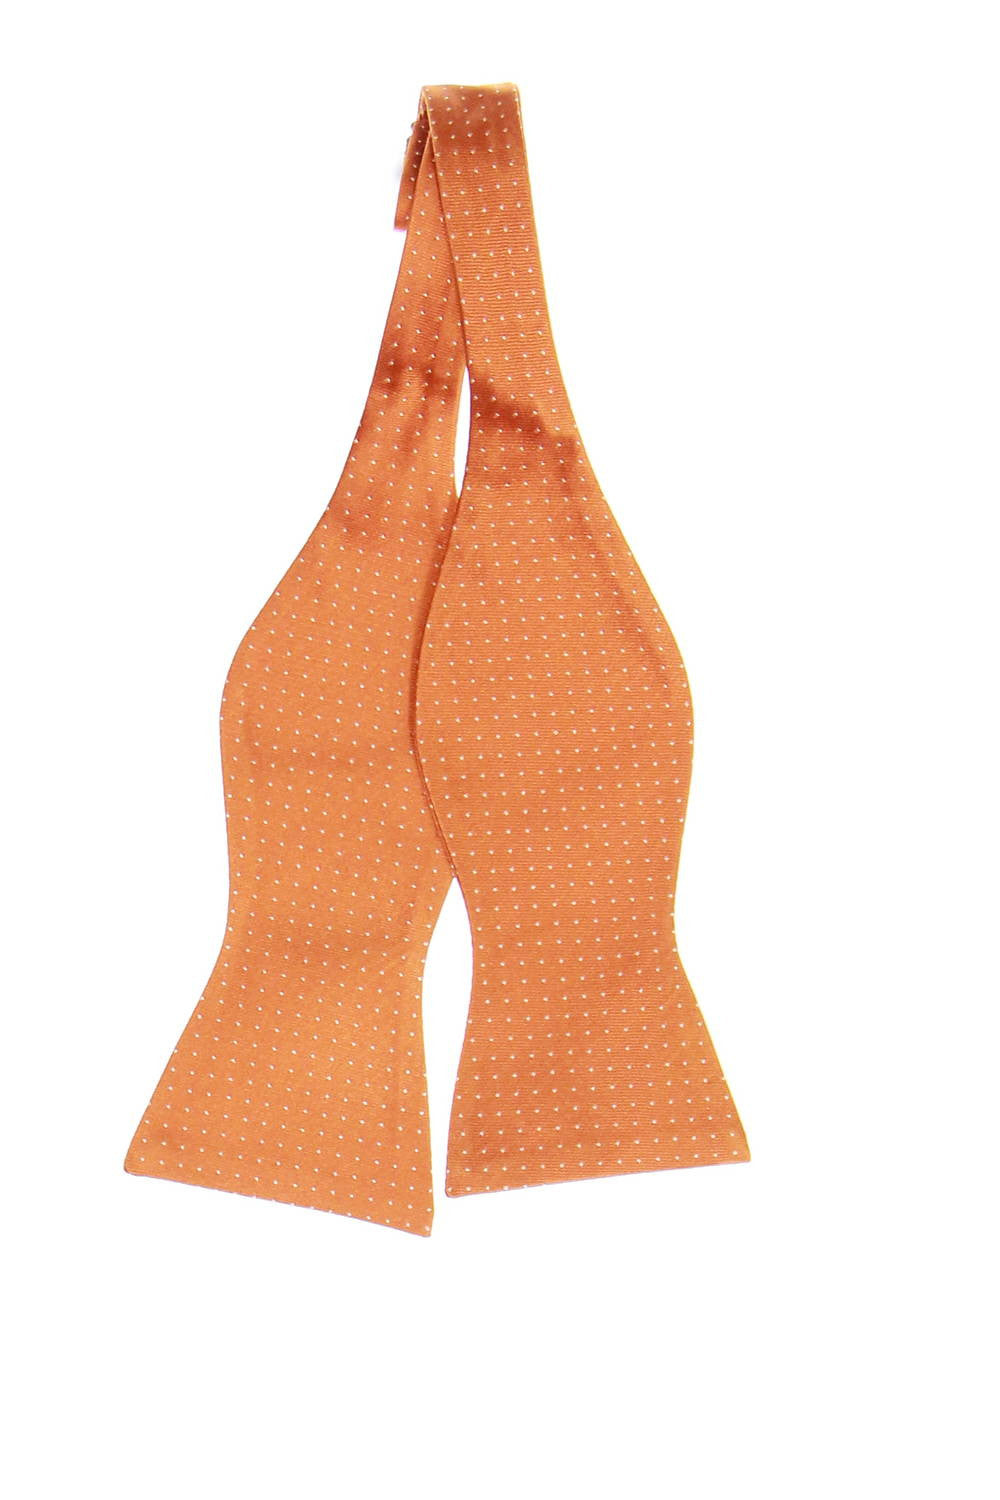 Tommy Hilfiger Mens Orange Dotted Bow Tie